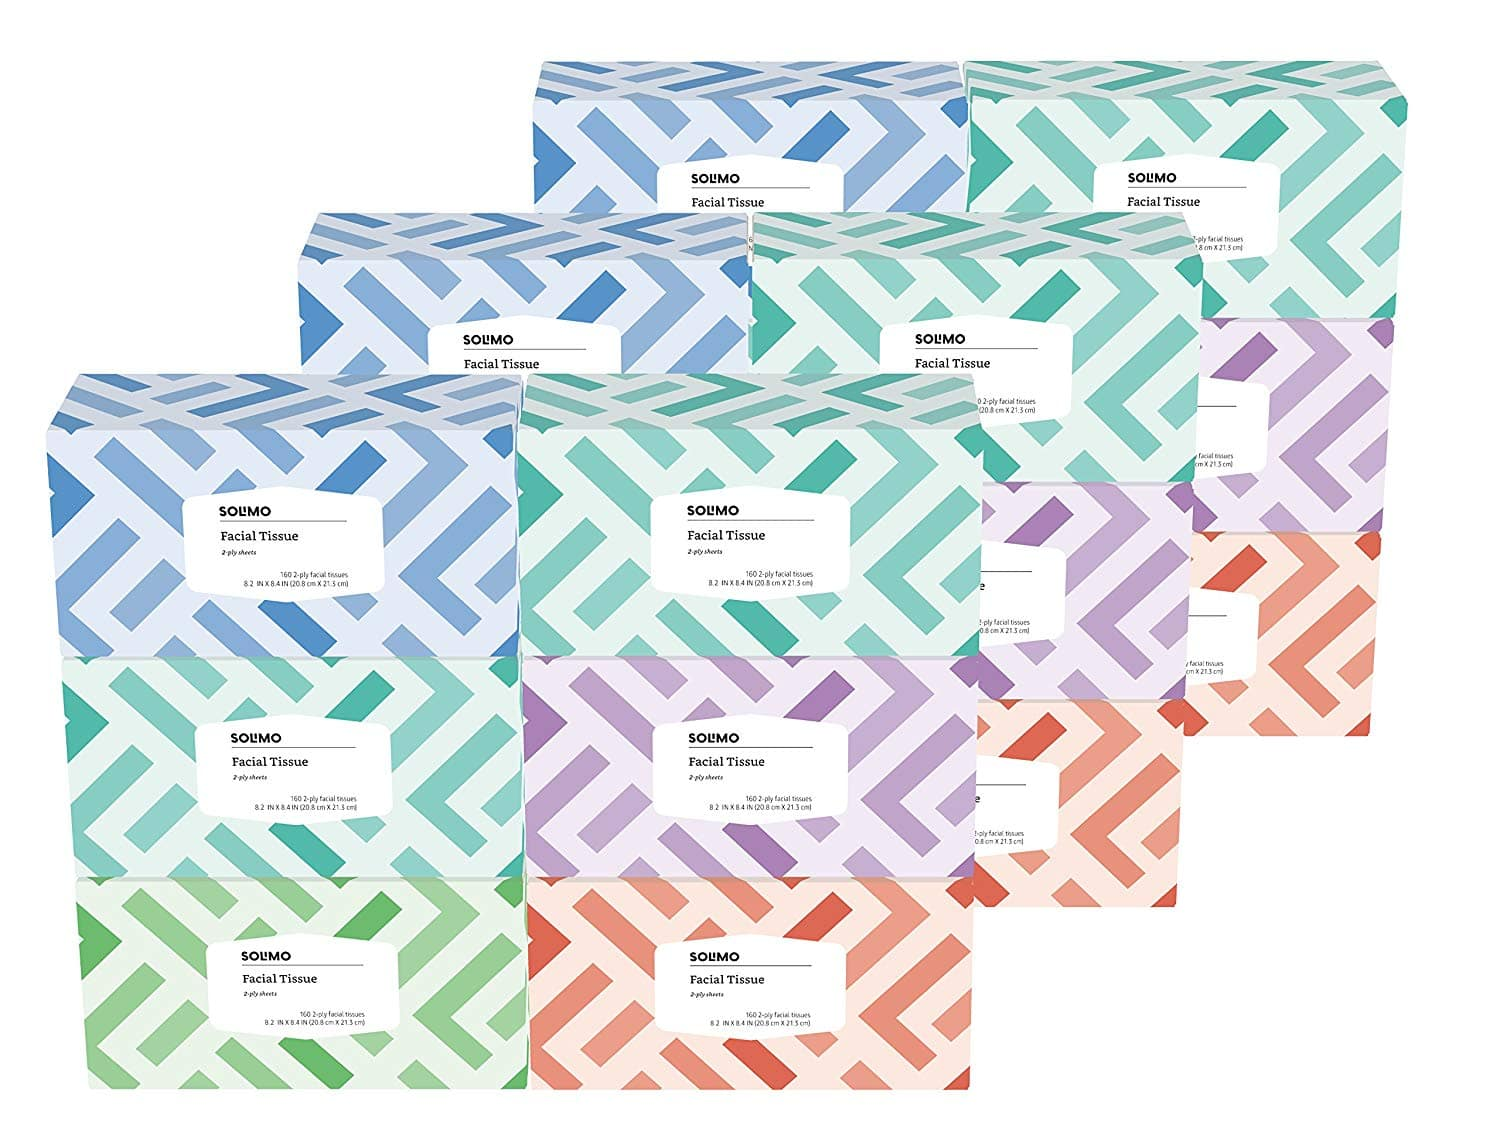 Select Amazon Accts: Amazon Brand - Solimo Facial Tissues, 160 Tissues per Box (18 Flat Boxes) $9.27 w/ S&S + Free S/H